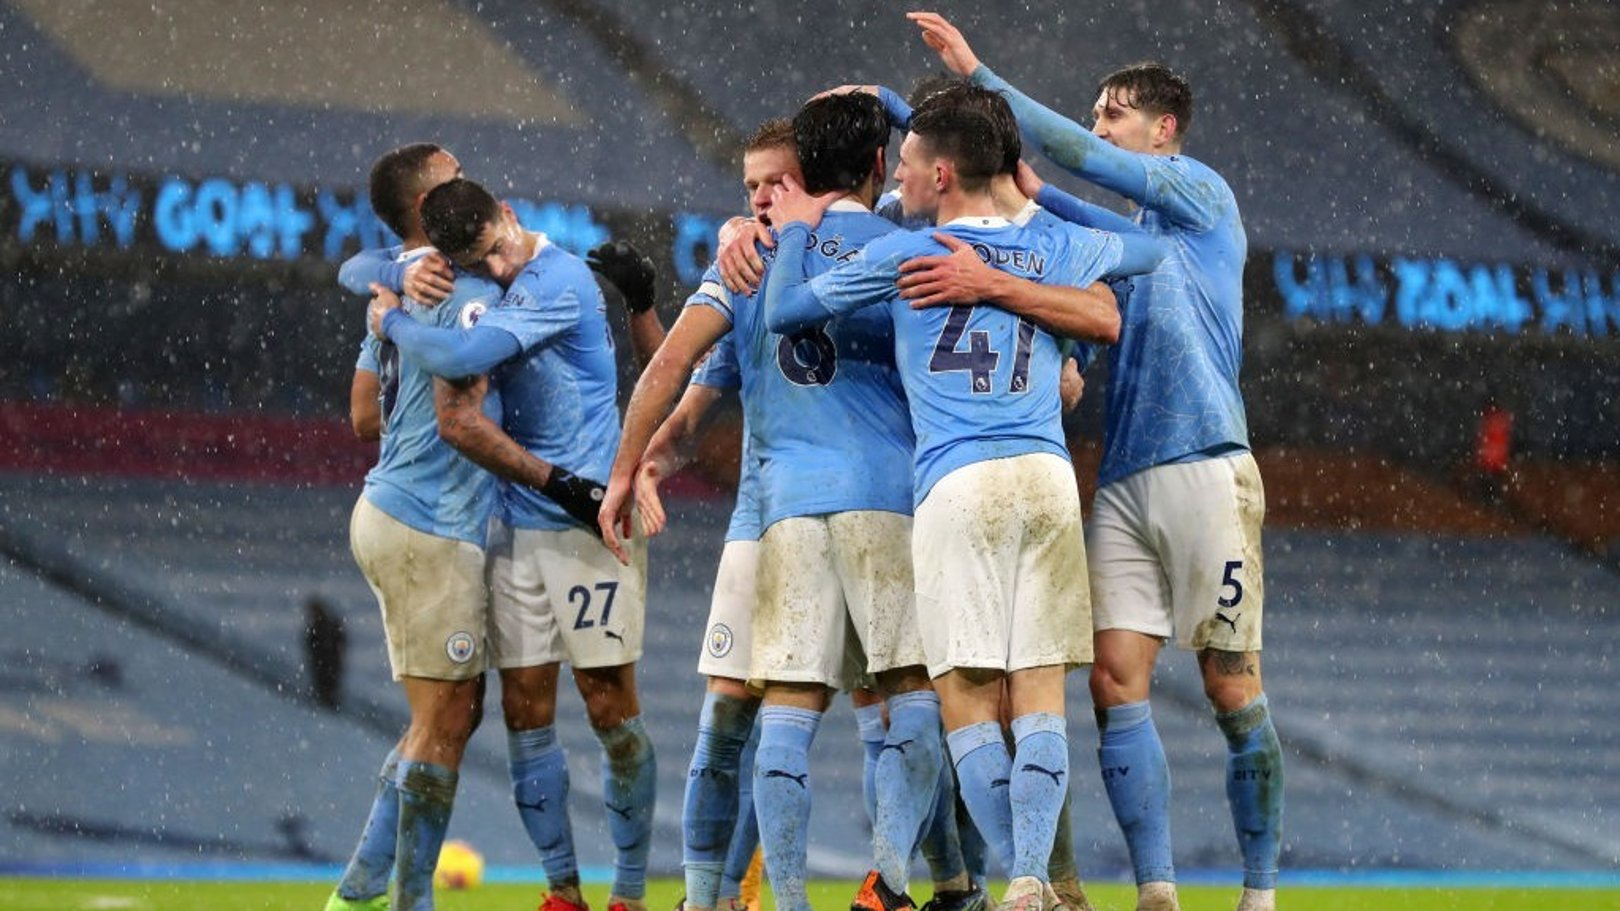 City 2-0 Villa | Digging deep to demonstrate our title credentials